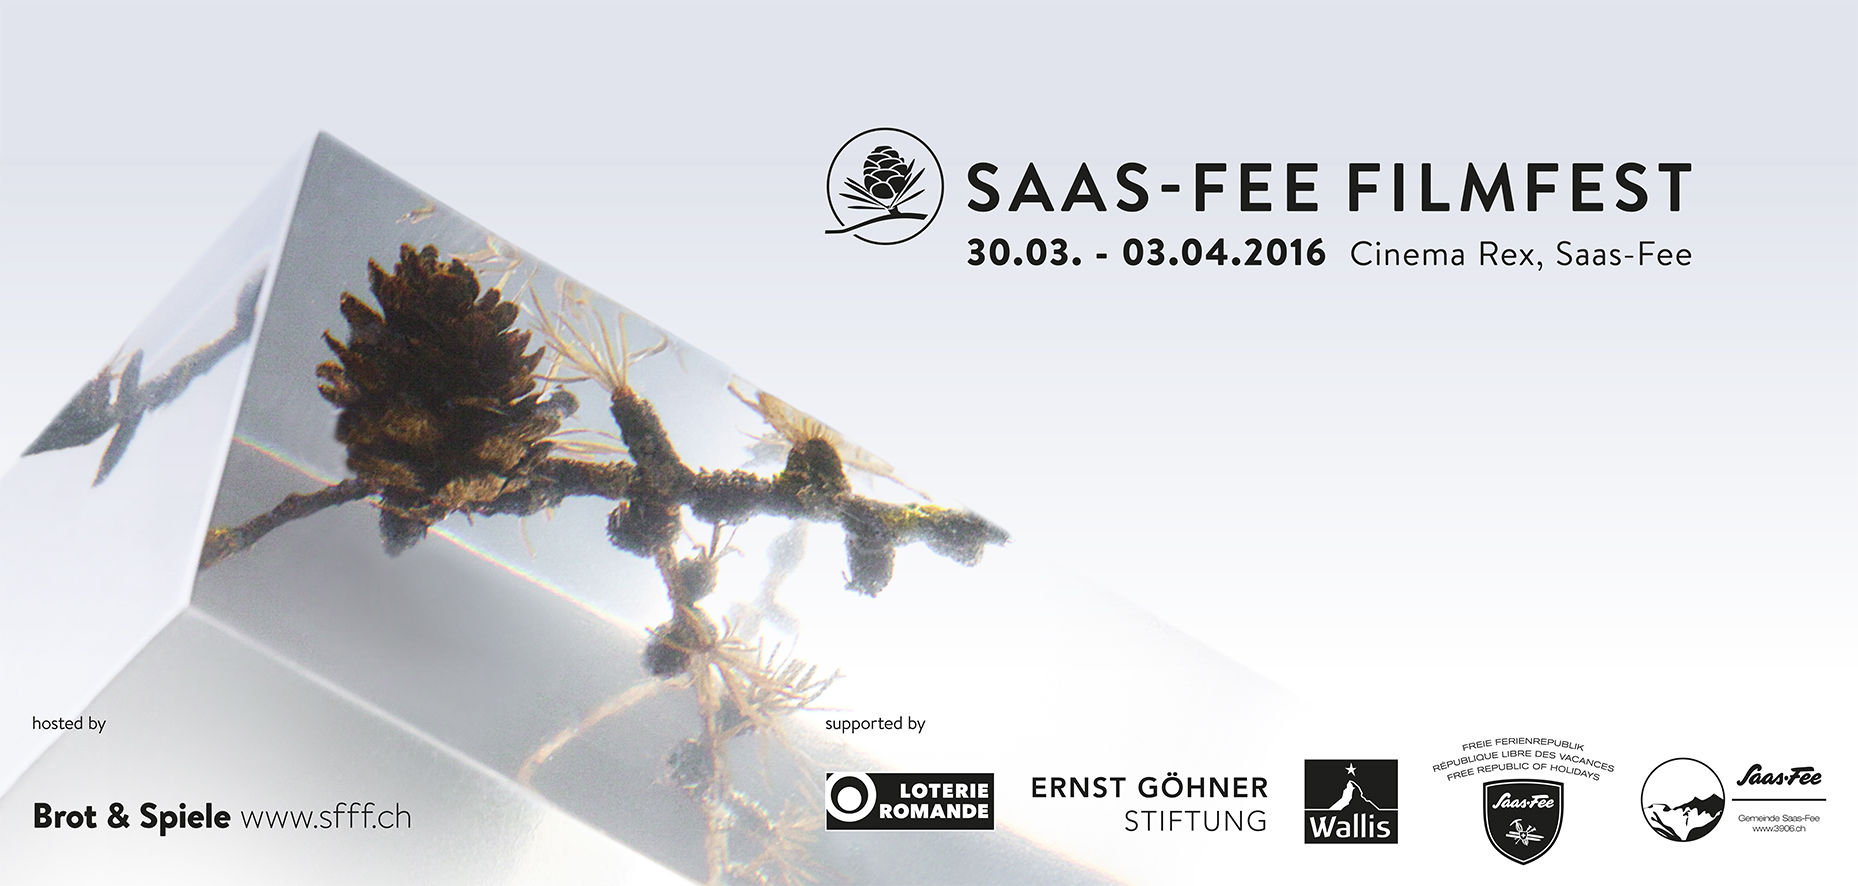 Saas-Fee Film Festival in the Free Republic of Holidays Saas-Fee